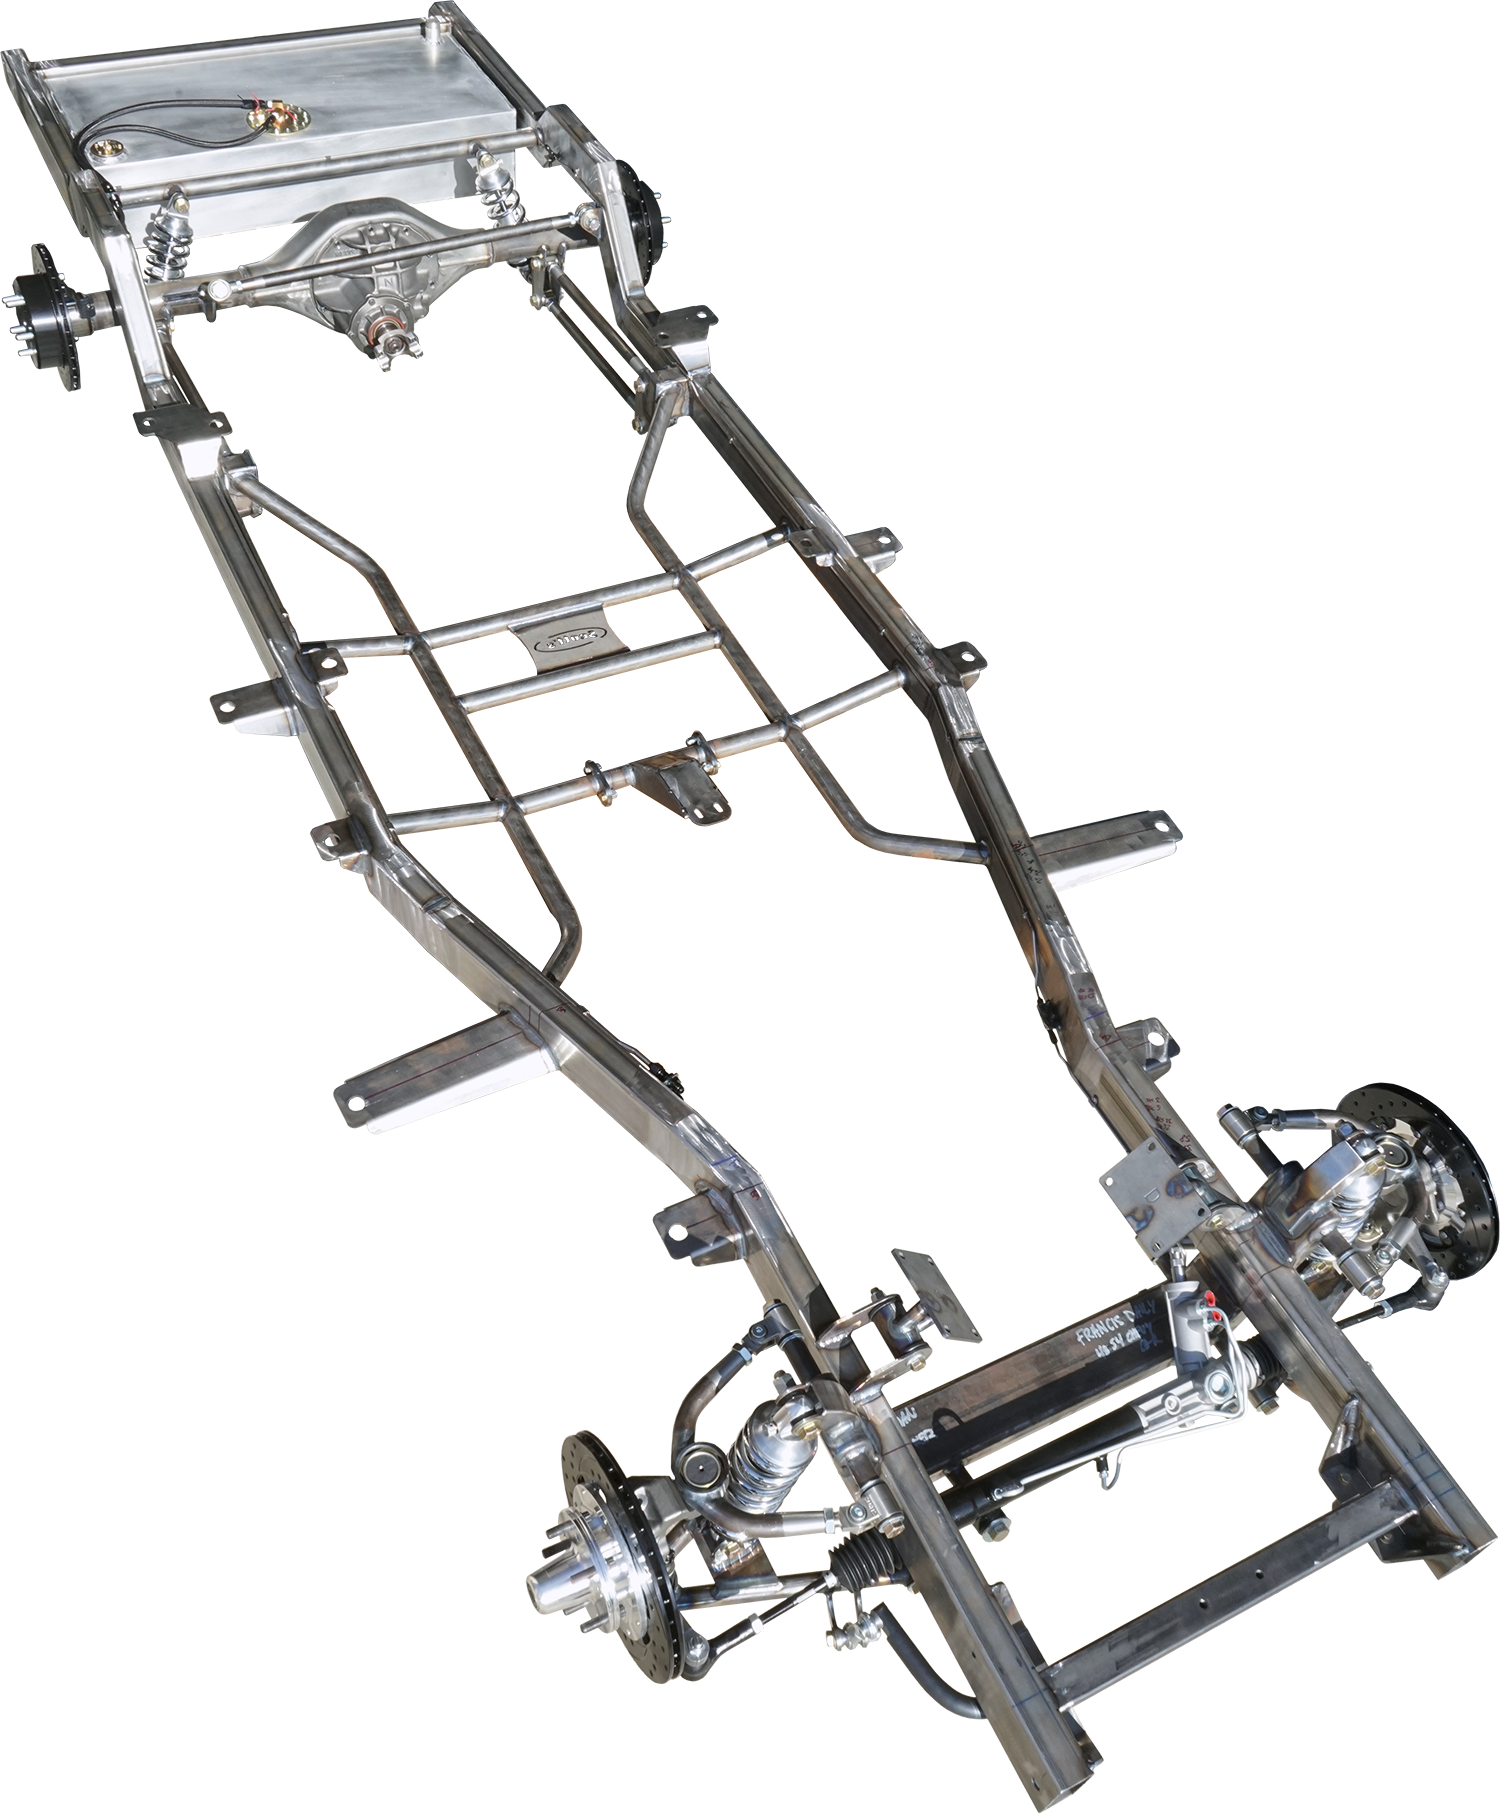 scotts-48-54-chevy-car-chassis-cut-out-2